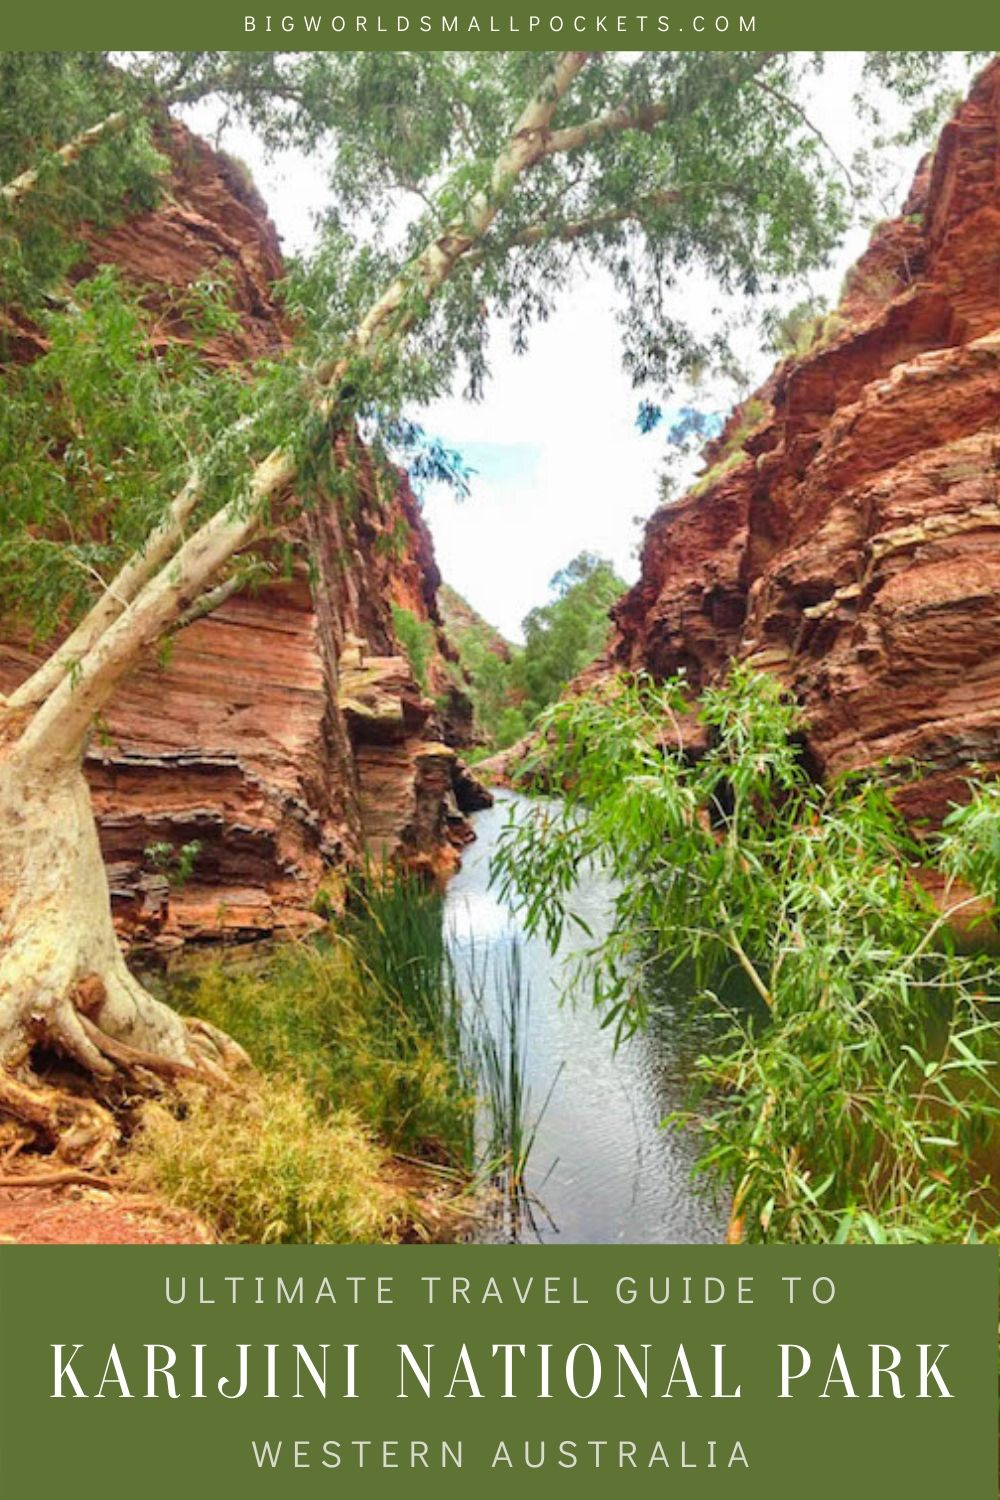 The Ultimate Guide to Visiting Karijini National Park in Western Australia